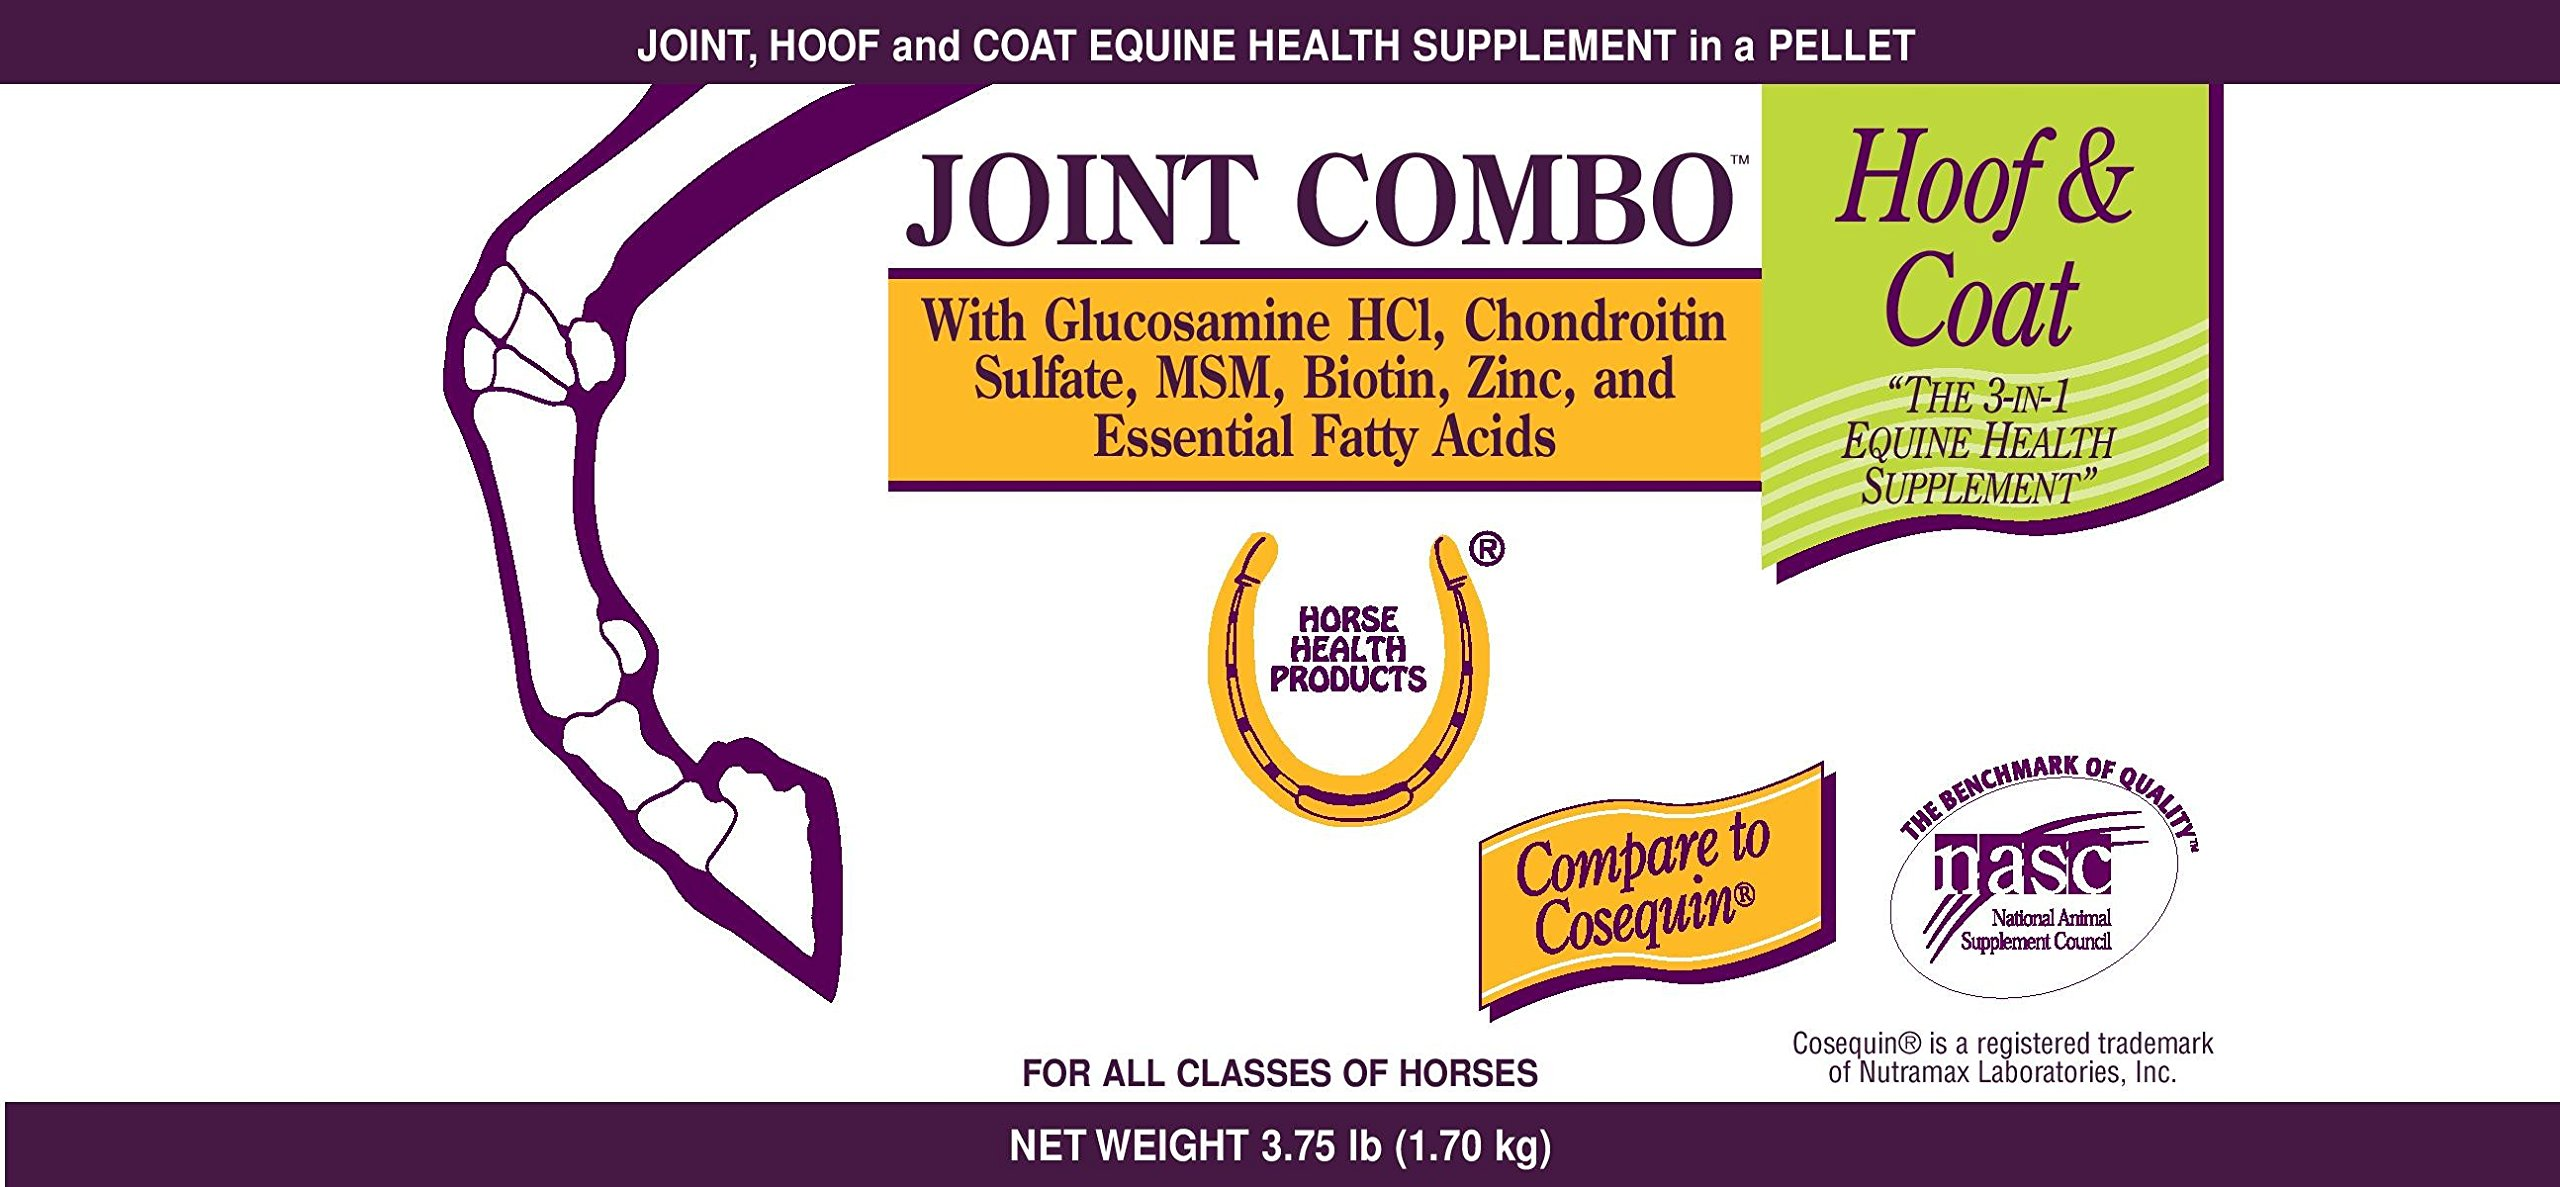 Farnam 3.75 lbs Joint Combo Hoof and Coat Equine Supplement in a Pellet for All Classes of Horses